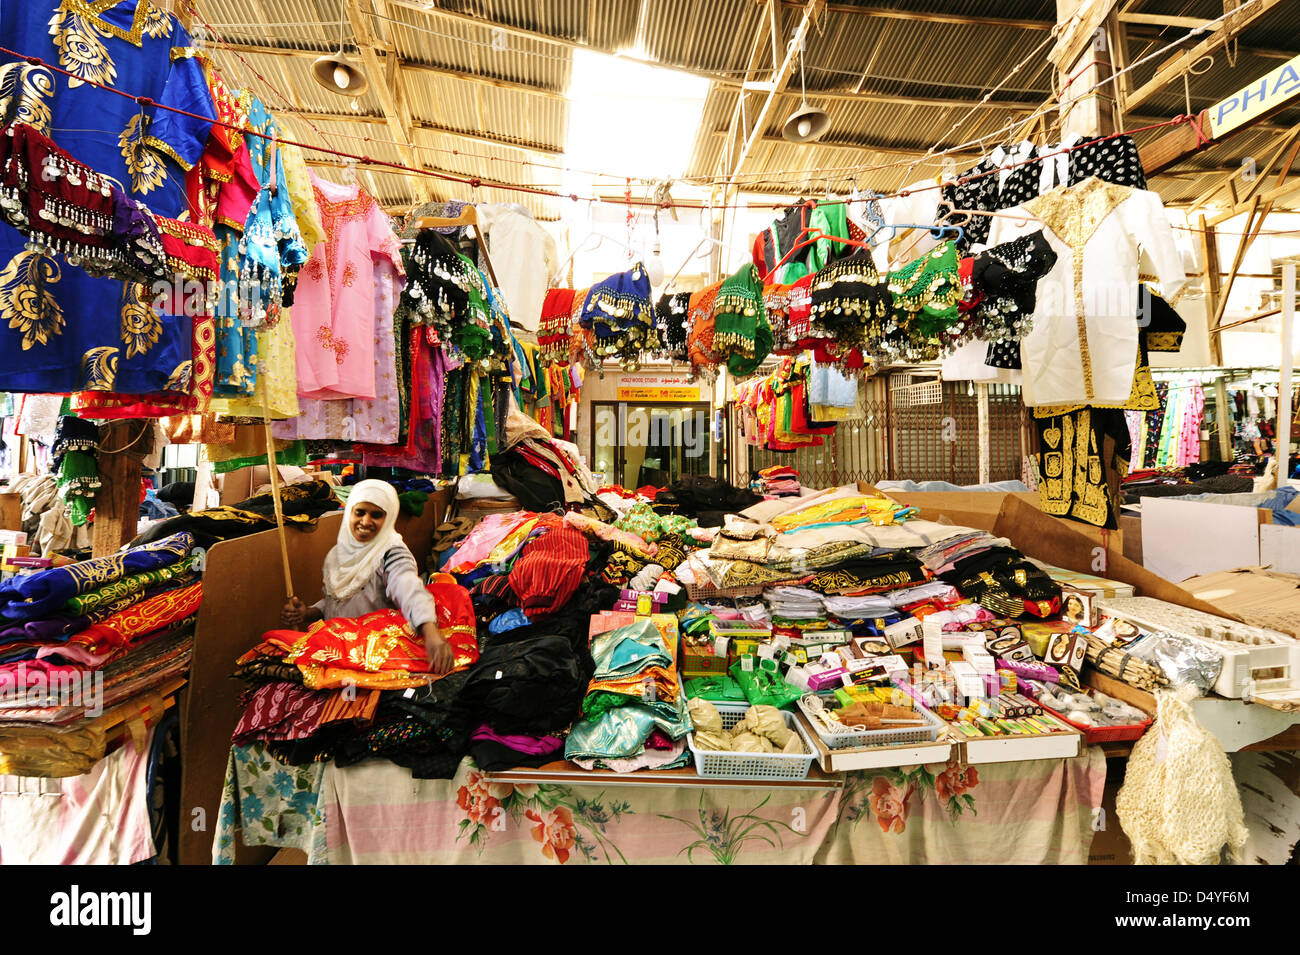 Kuwait, Kuwait City, local colorful market with traditional cloths